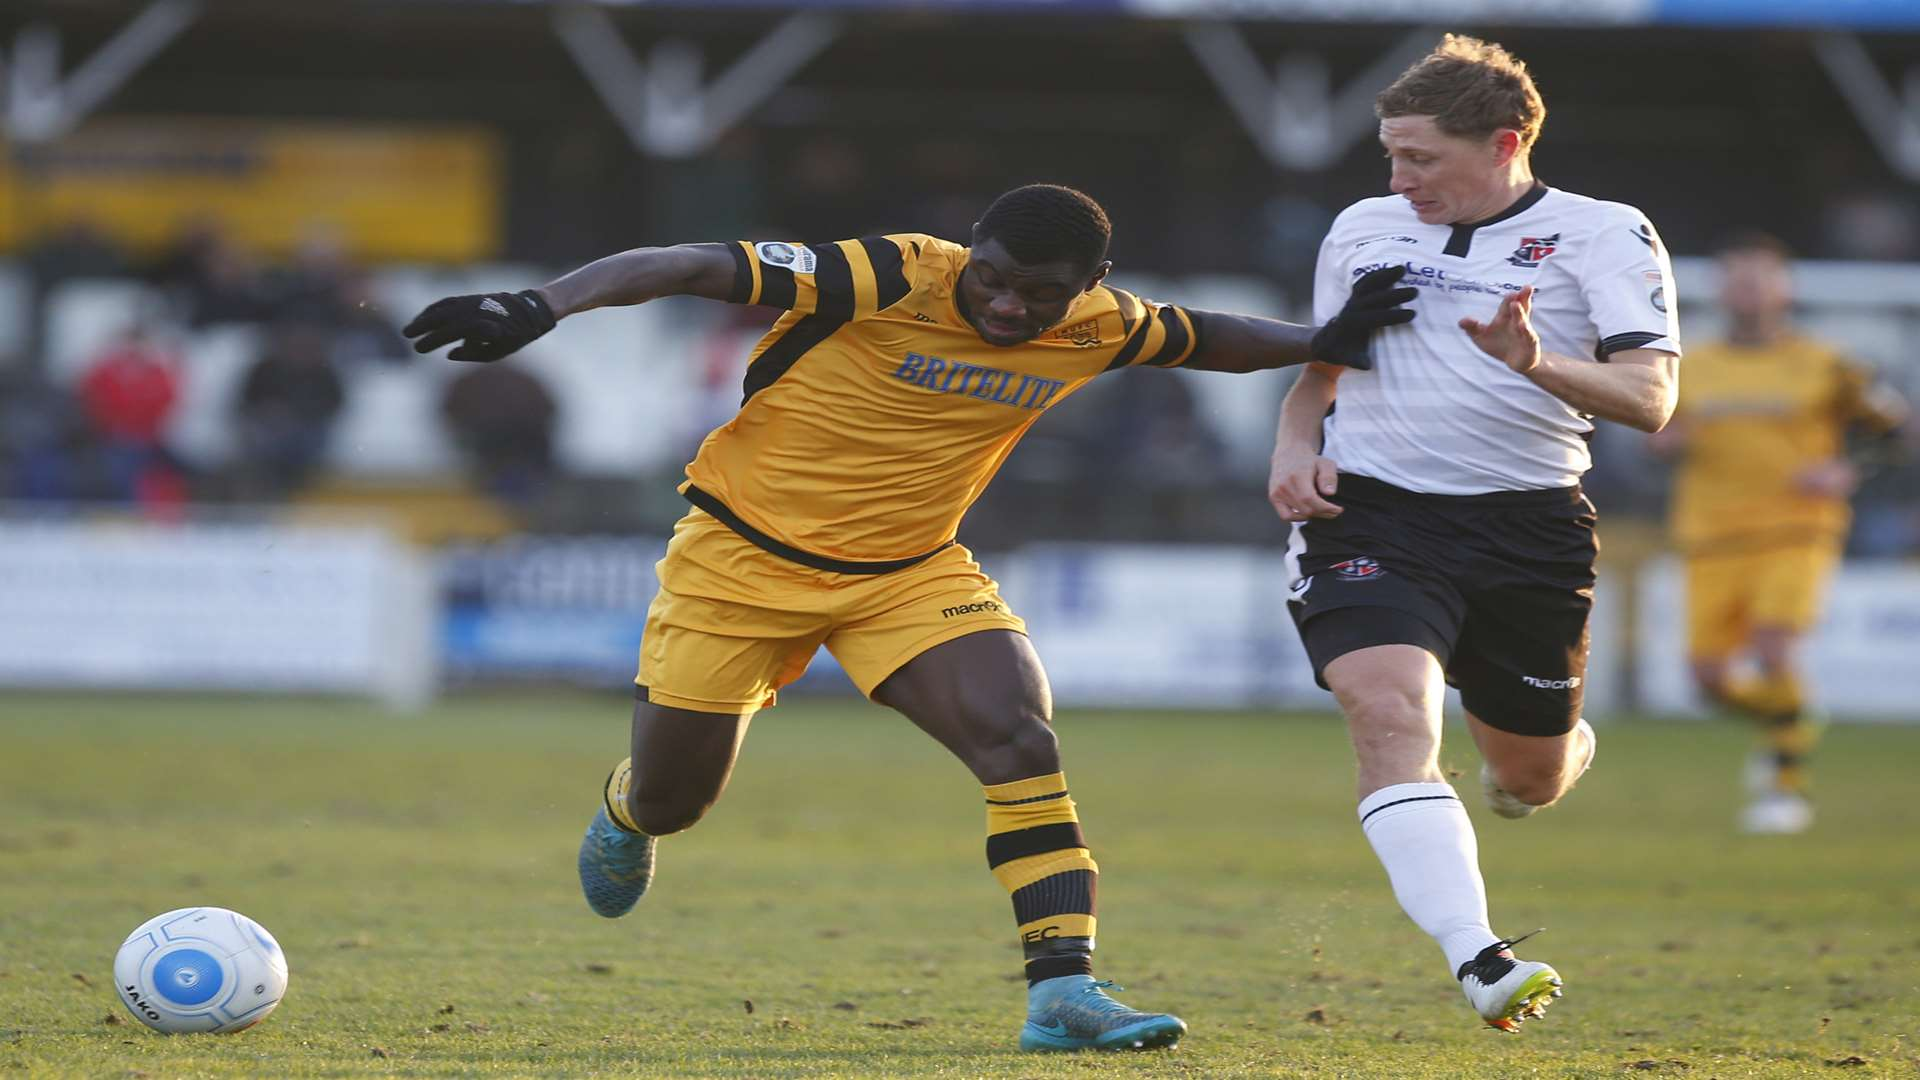 Seth Twumasi on his last Maidstone appearance at Bromley Picture: Andy Jones